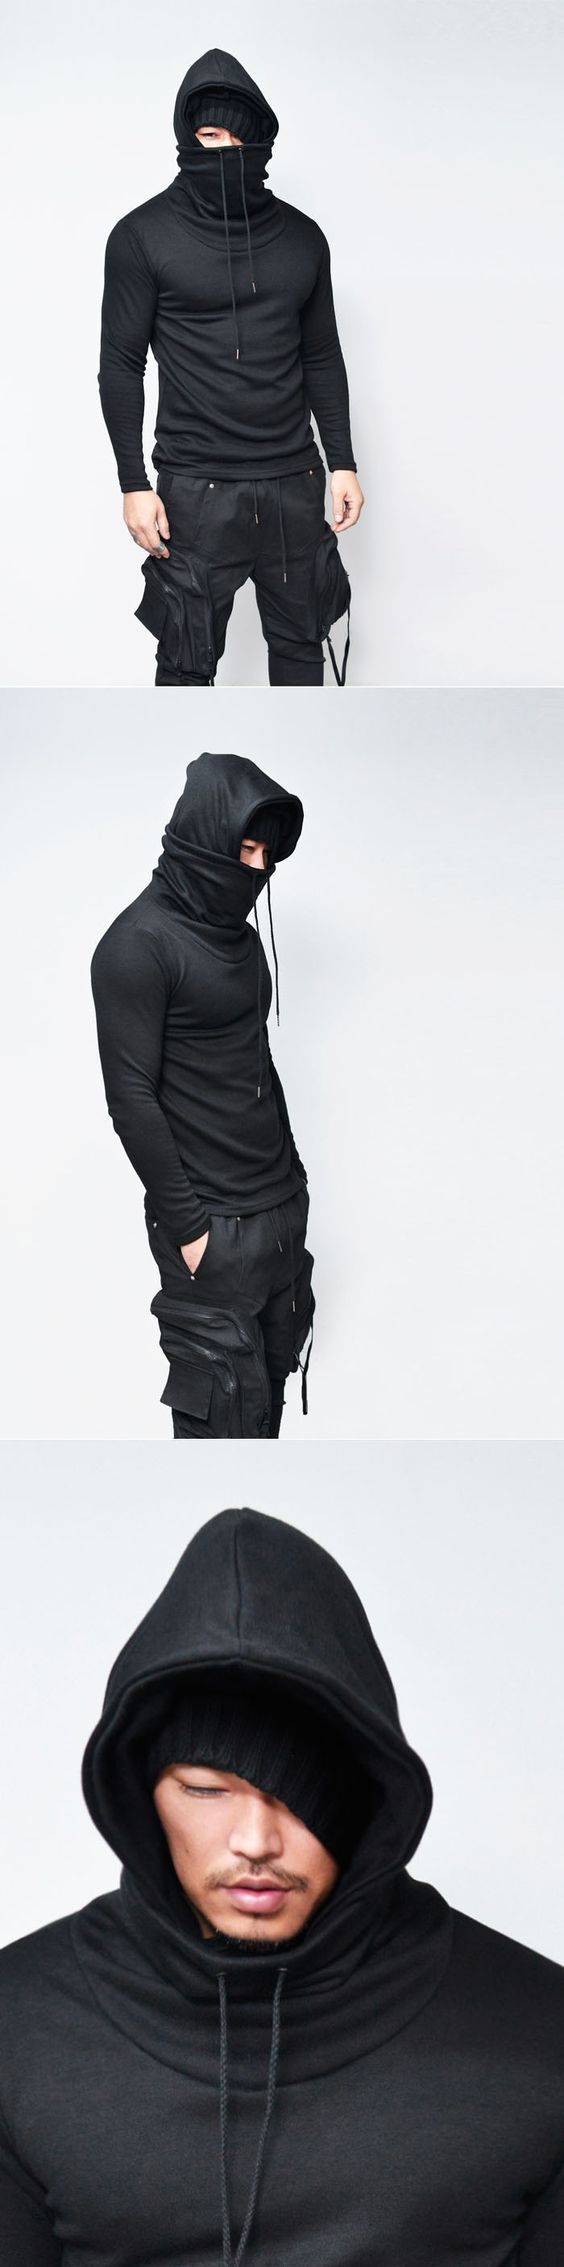 Tops :: Hooded Ninja Turtle Tee-Hoodie 159 - Mens Fashion Clothing For An Attractive Guy Look